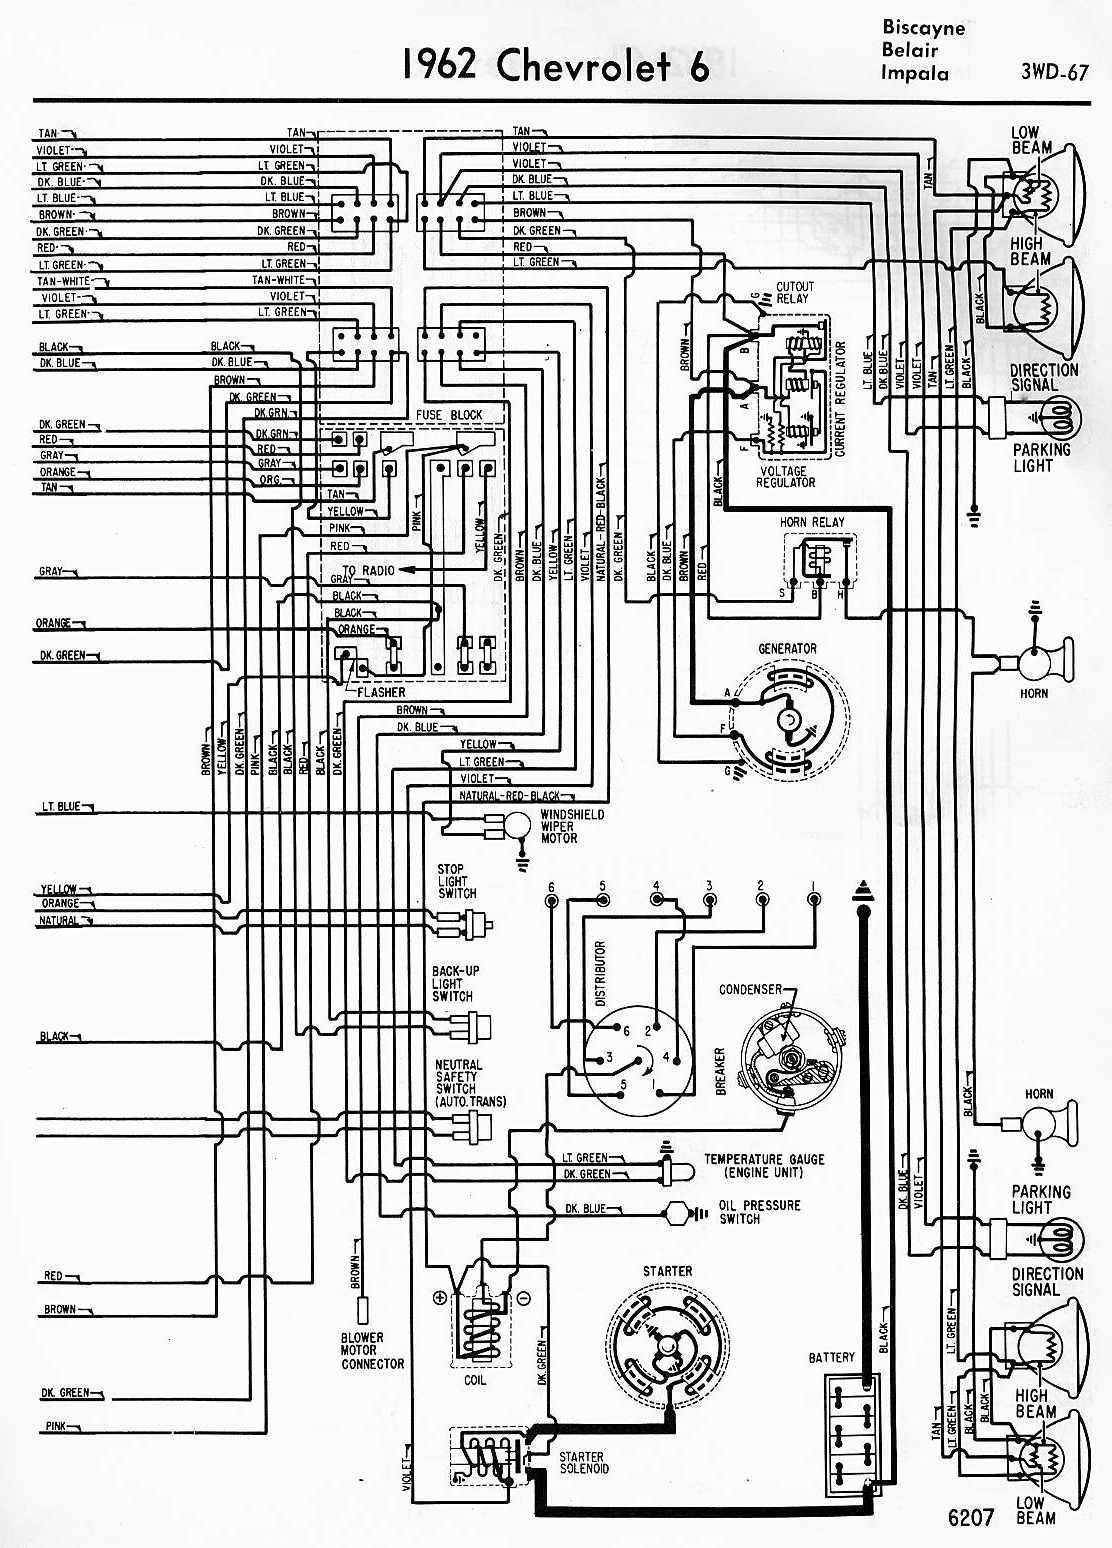 65 Pontiac Ignition Switch Wiring Diagram Library 57 Bel Air May 2011 All About Diagrams Gto Schematic 1965